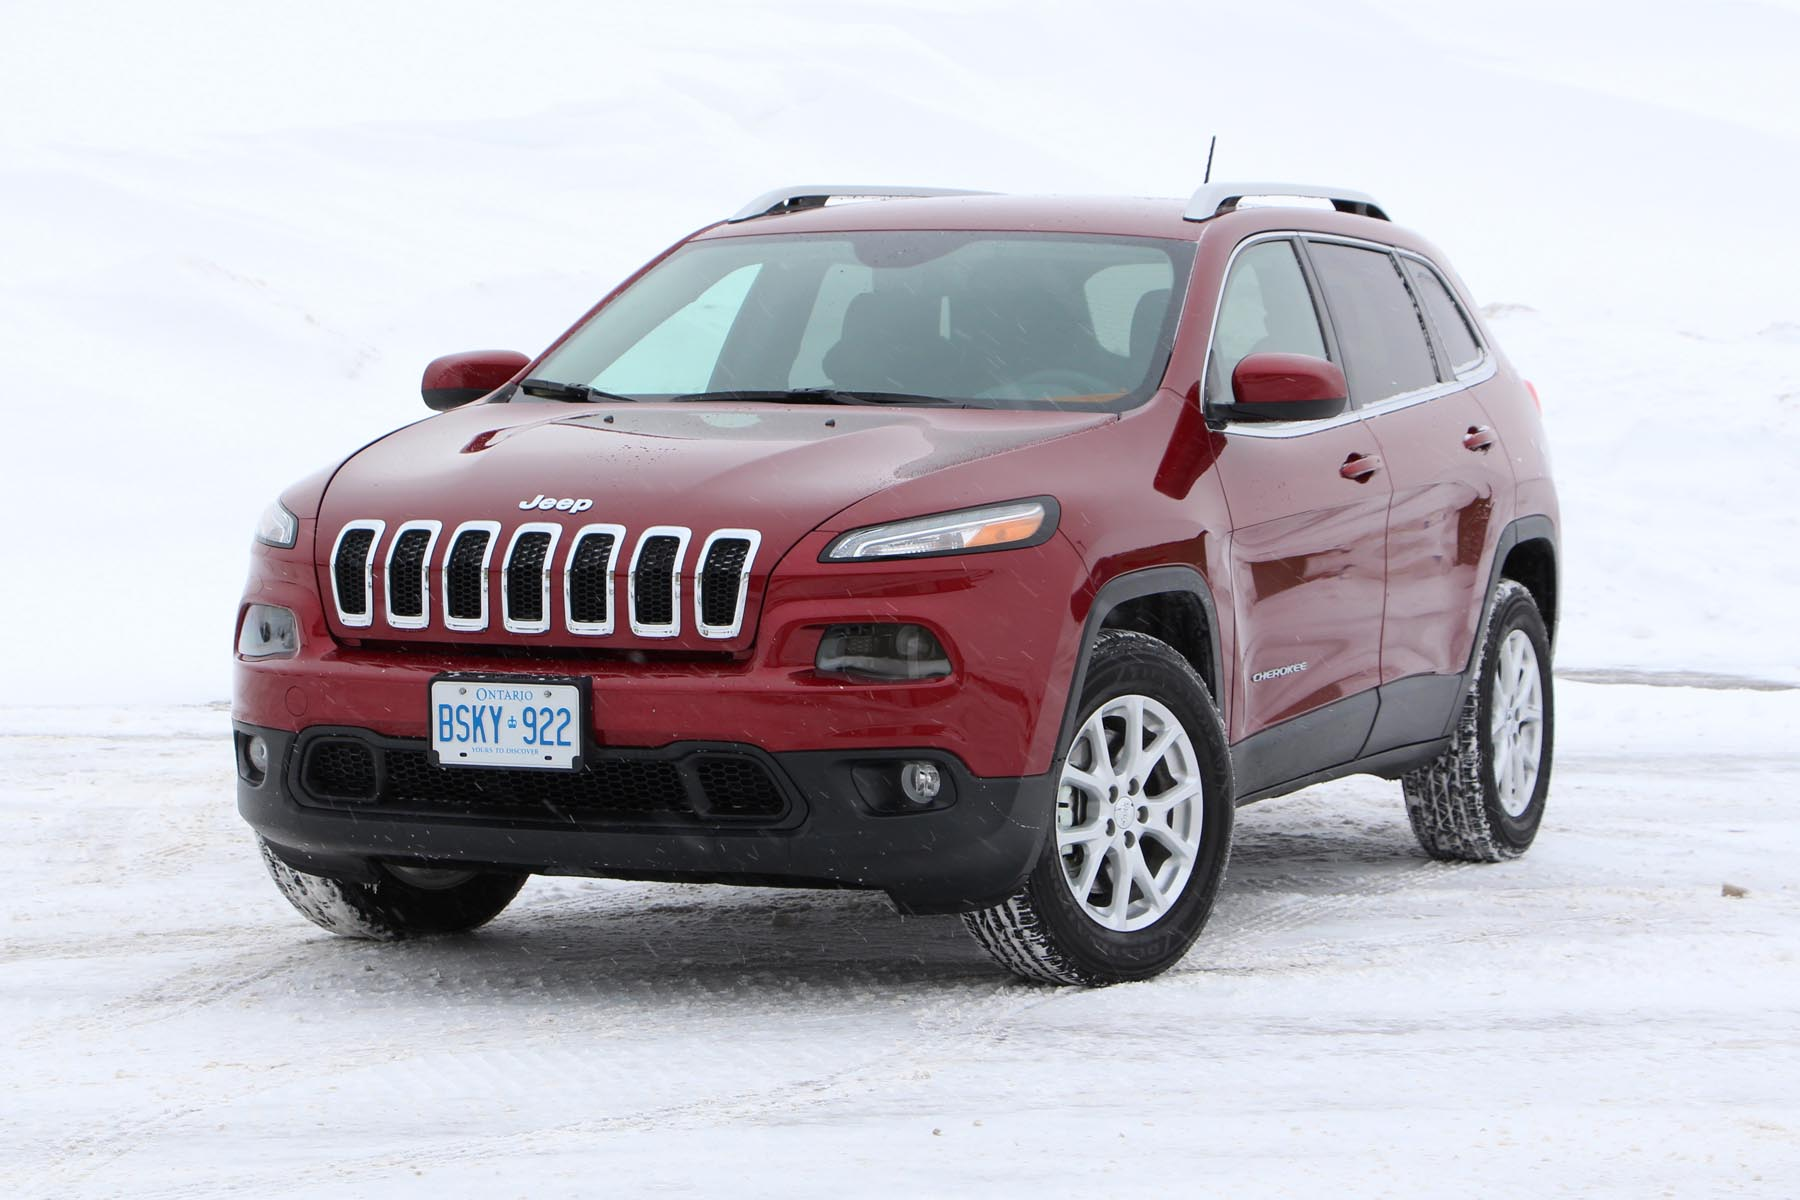 test drive 2014 jeep cherokee north 4x4 v6 page 3 of 3. Black Bedroom Furniture Sets. Home Design Ideas